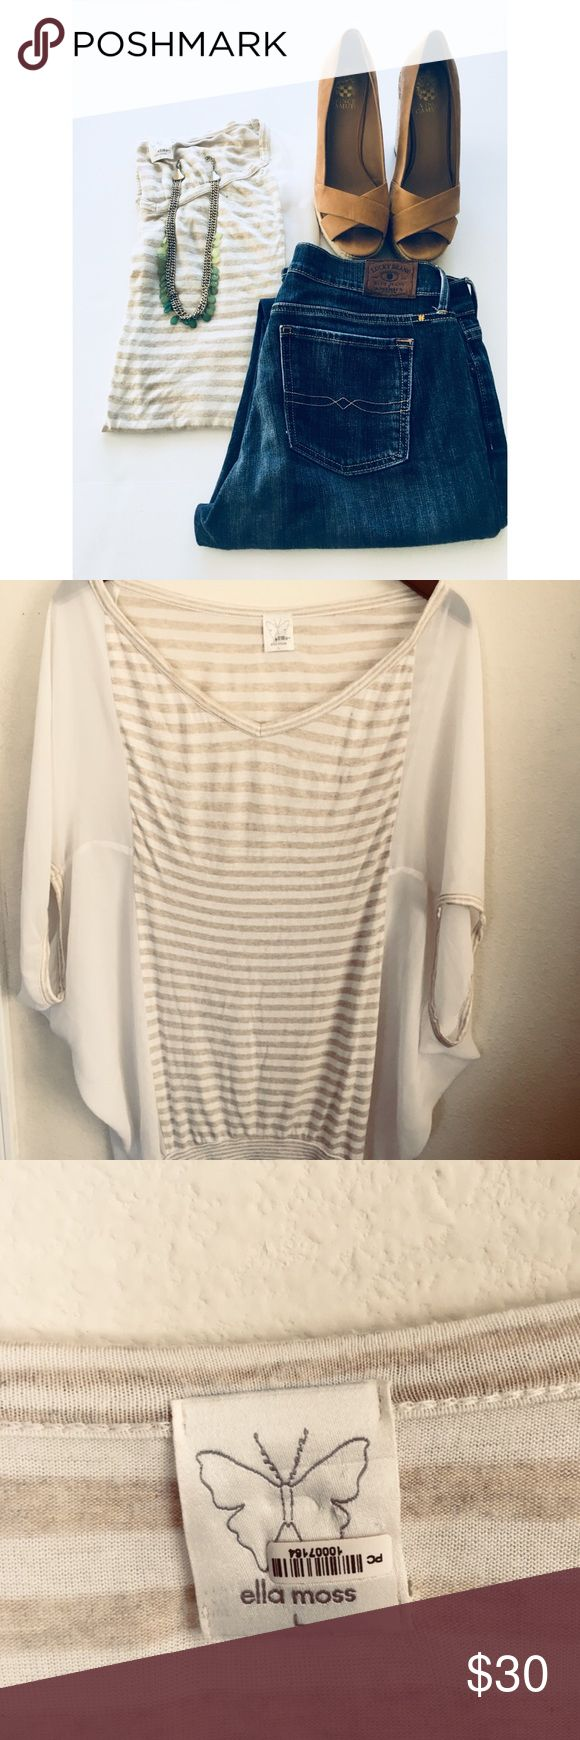 """🔸Ella Moss Cream Batwing Blouse🔸 🔸Ella Moss Cream Batwing Blouse in Large.  Cream blouse with beige stripes. 100 % Poylester. Condition :  Pre-Owned. Small snag (shown in picture)  🔸Measurements :  Pit to Pit : 32  Length top to bottom : 29""""  🚭Non- Smoking Home Ella Moss Tops Blouses"""